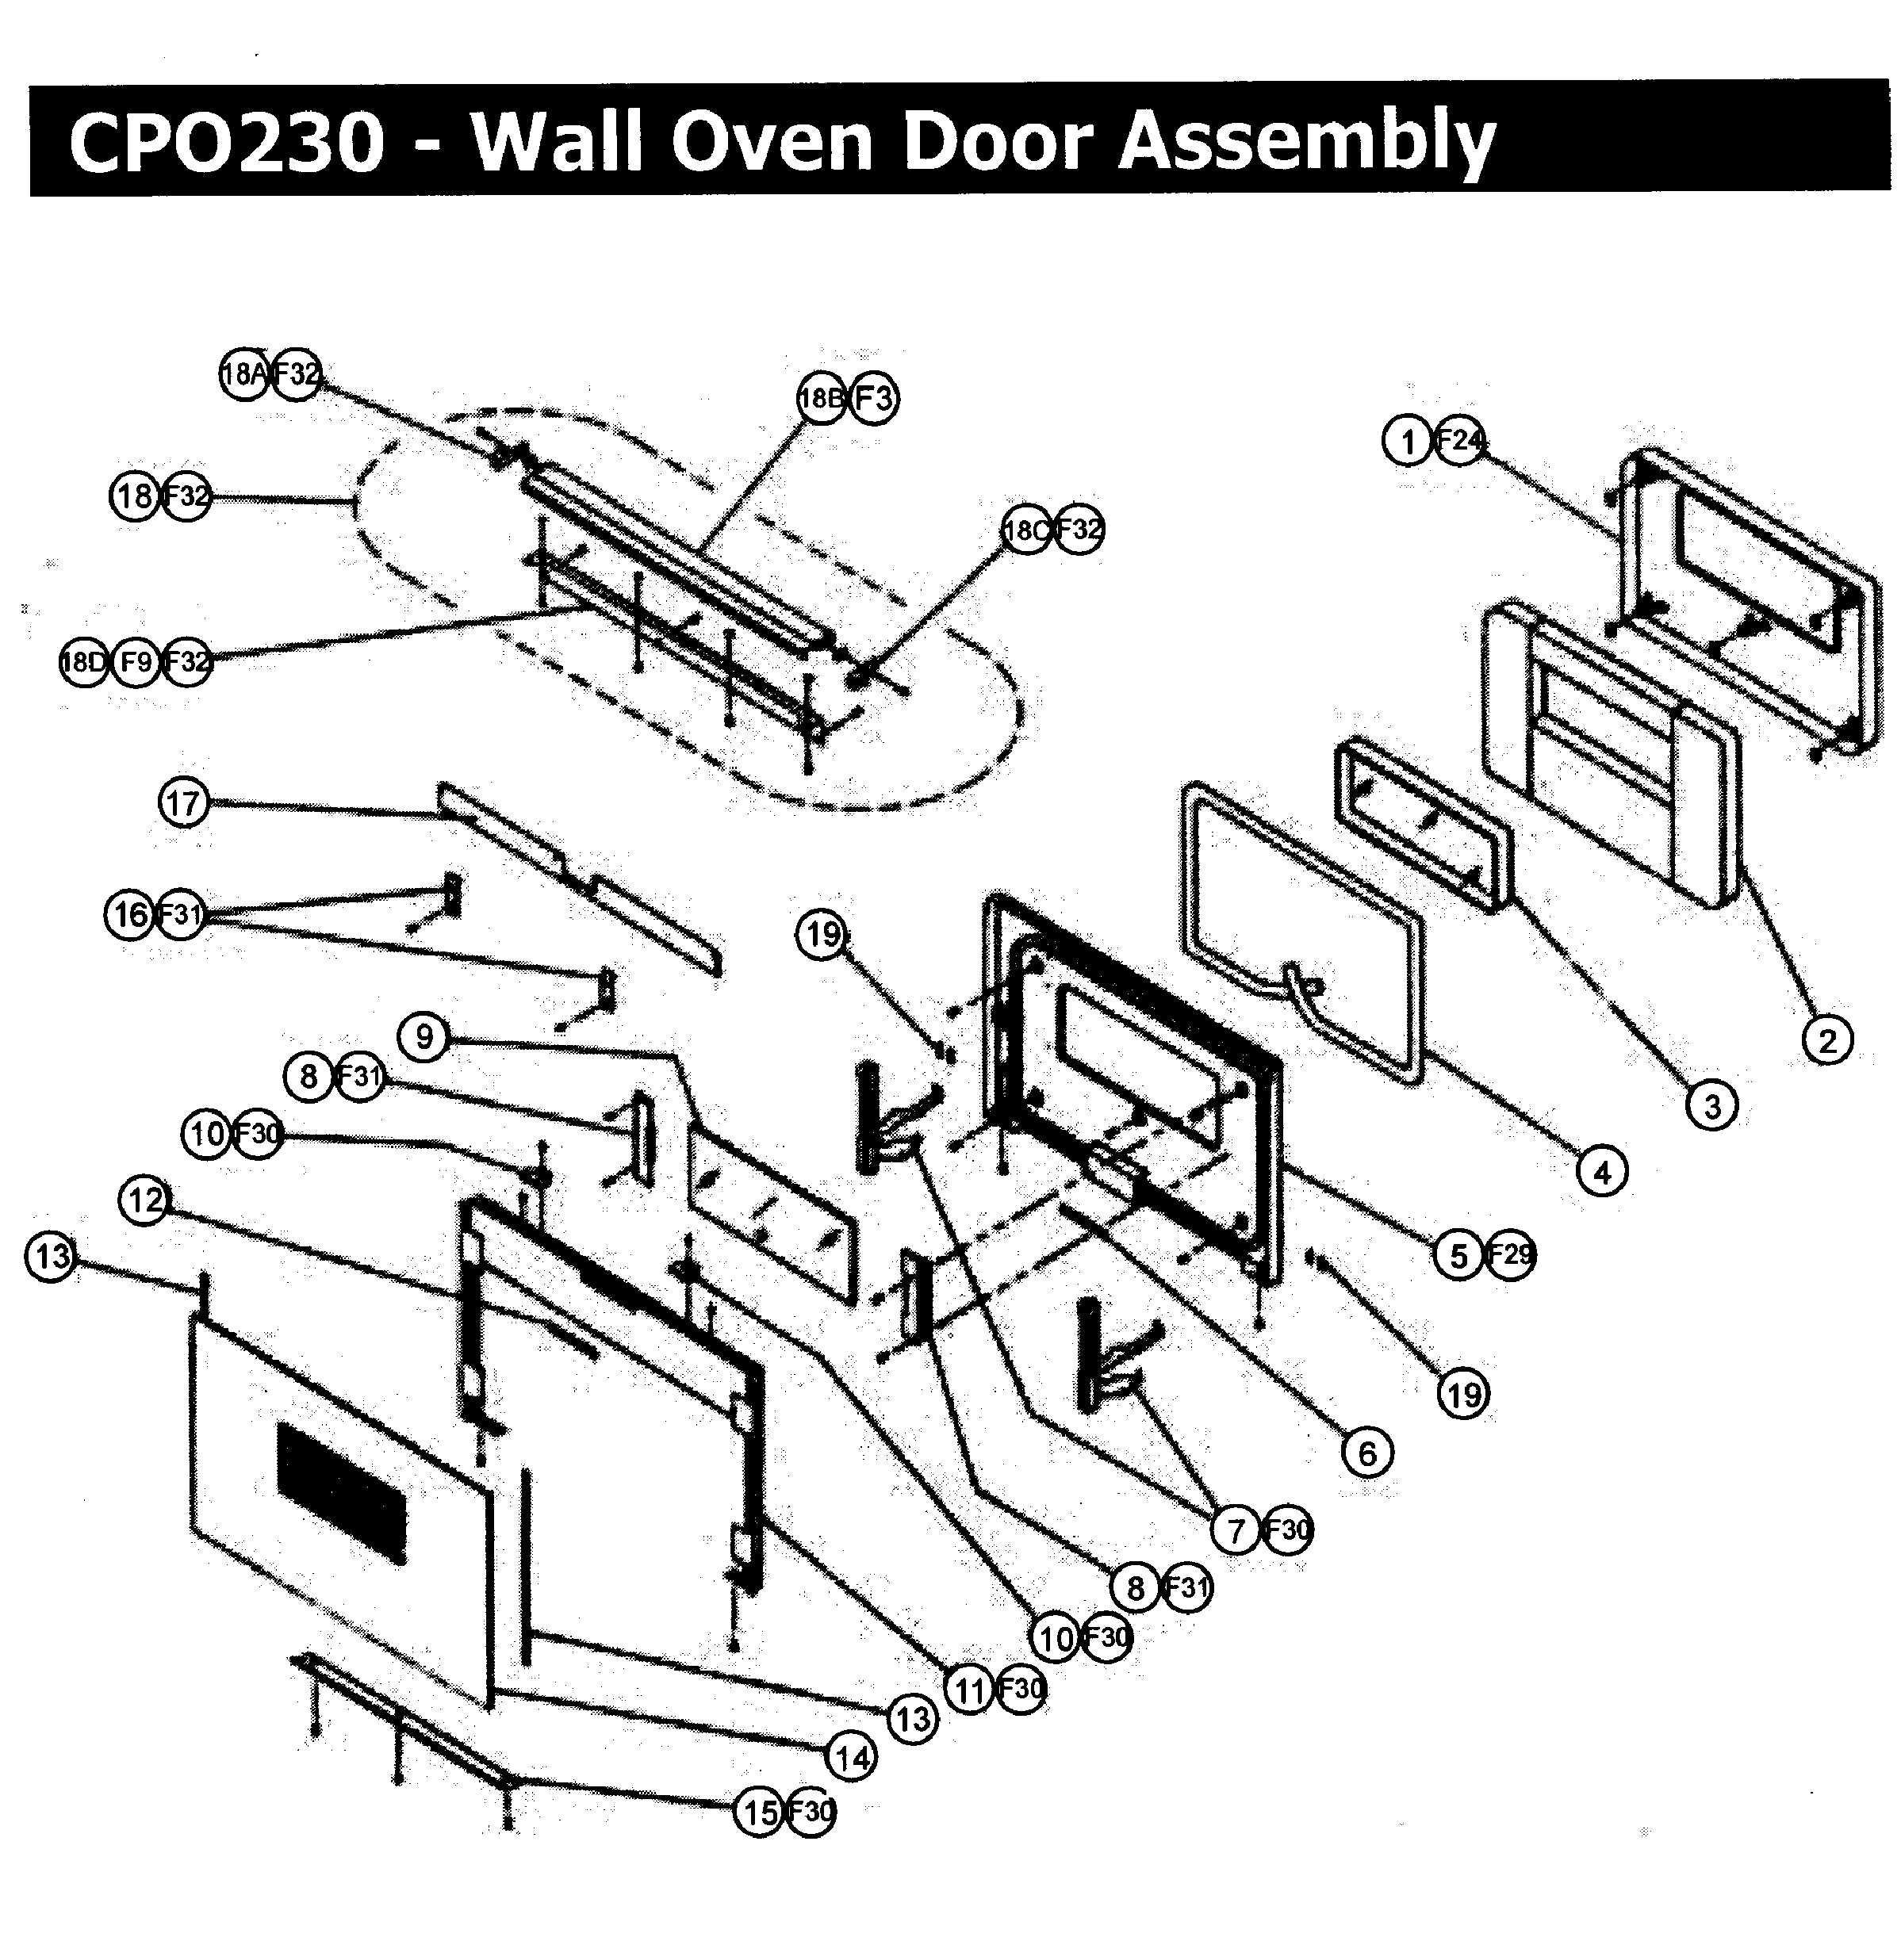 CPO230 Wall Oven Door assy Parts diagram